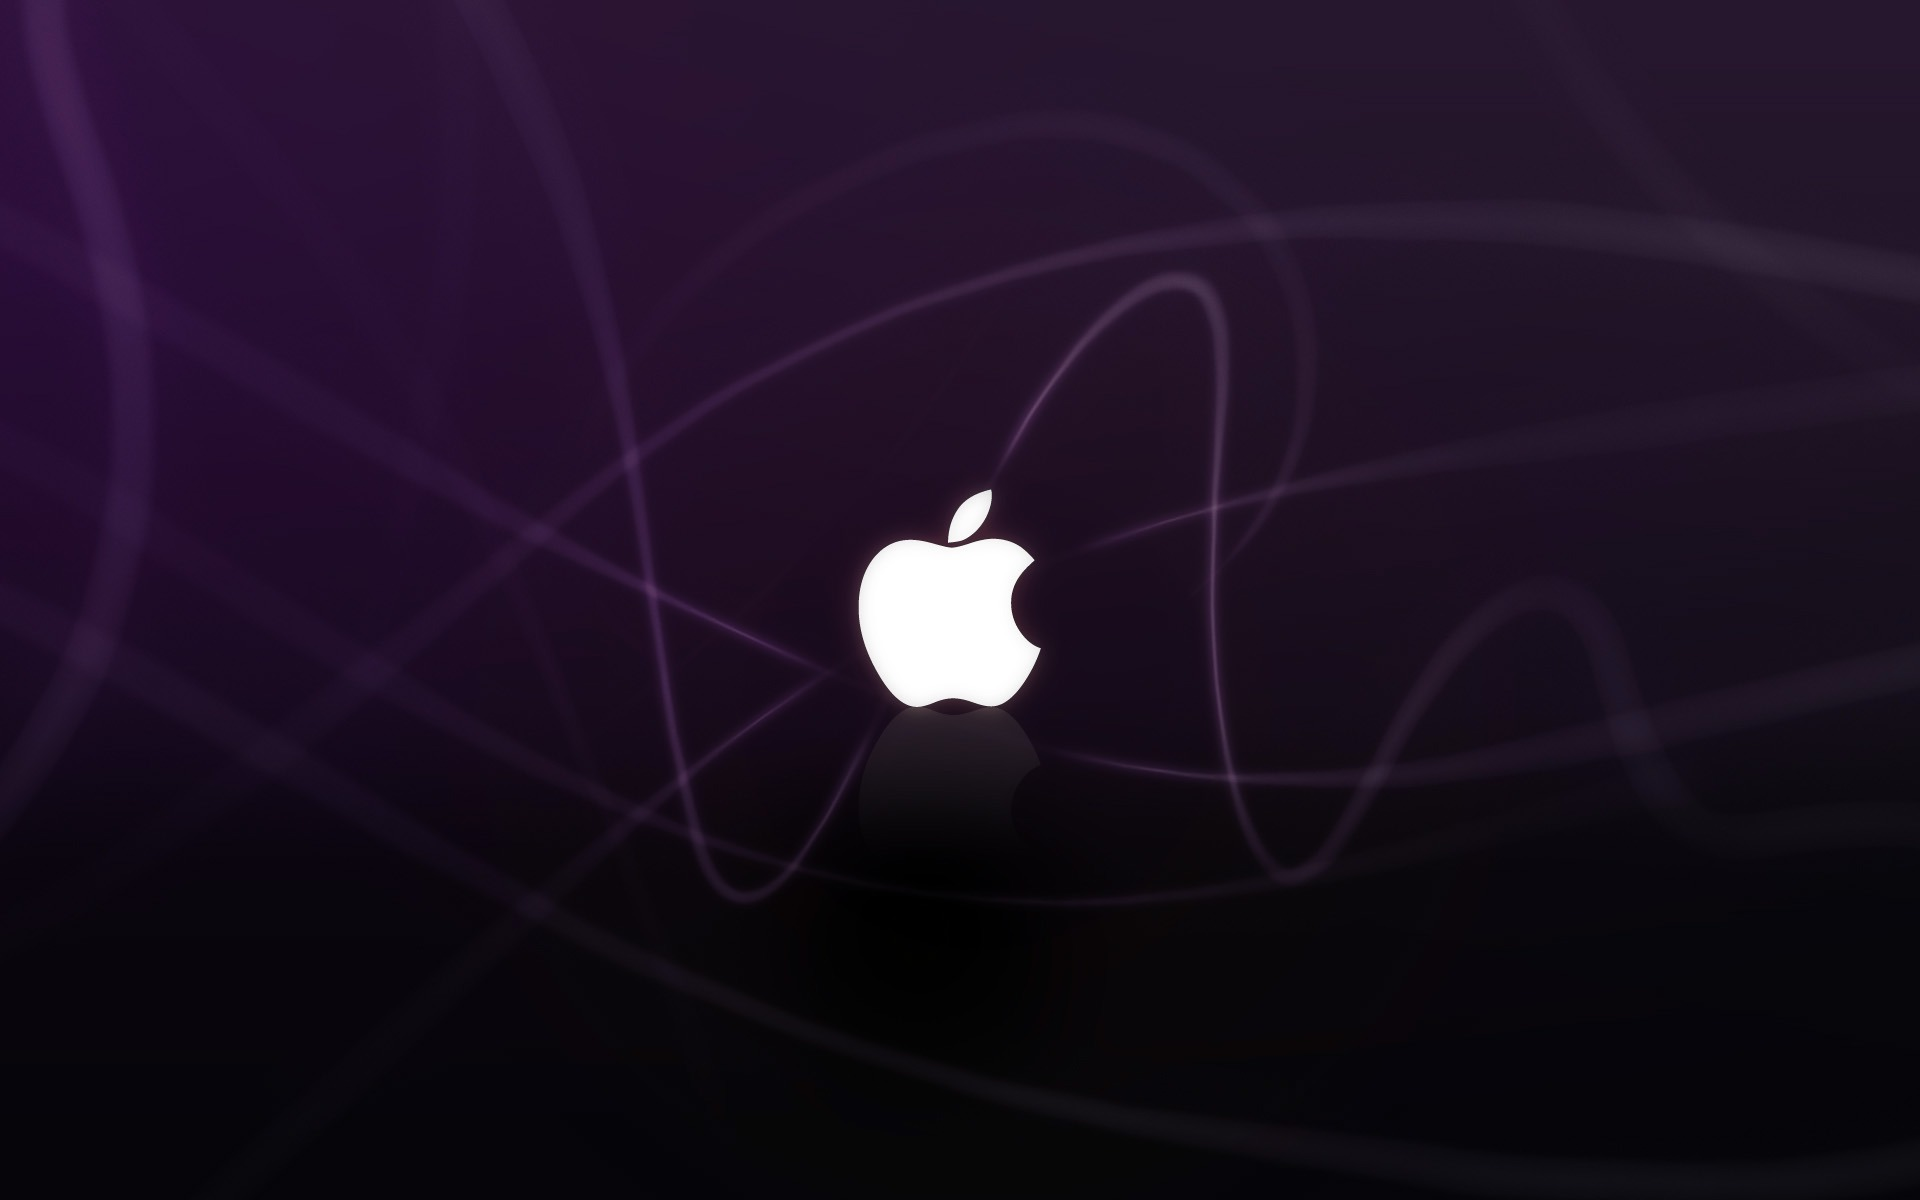 hd apple wallpaper apple wallpaper apple logo wallpaper hd 1920x1200